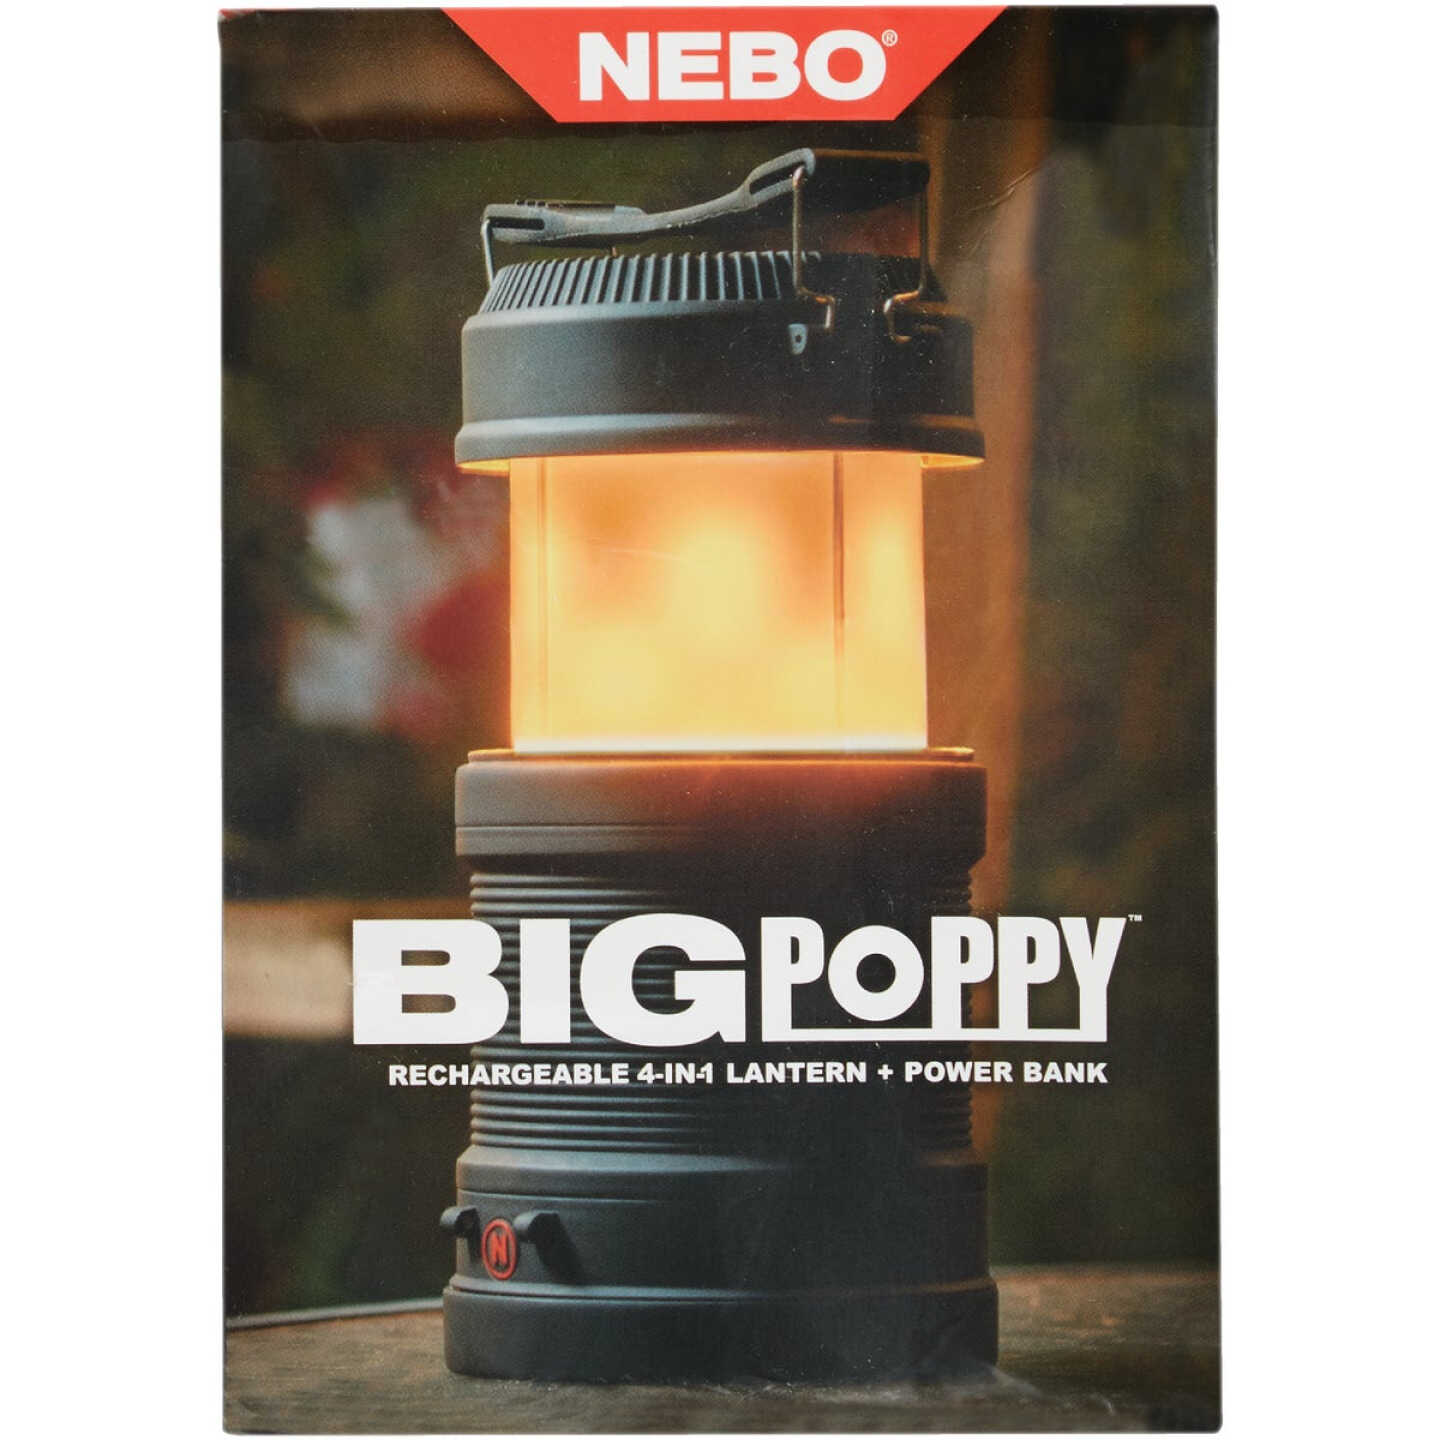 Nebo Big Poppy 8.37 In. H. x 4.06 In. Dia.Rechargeable LED Lantern Image 4